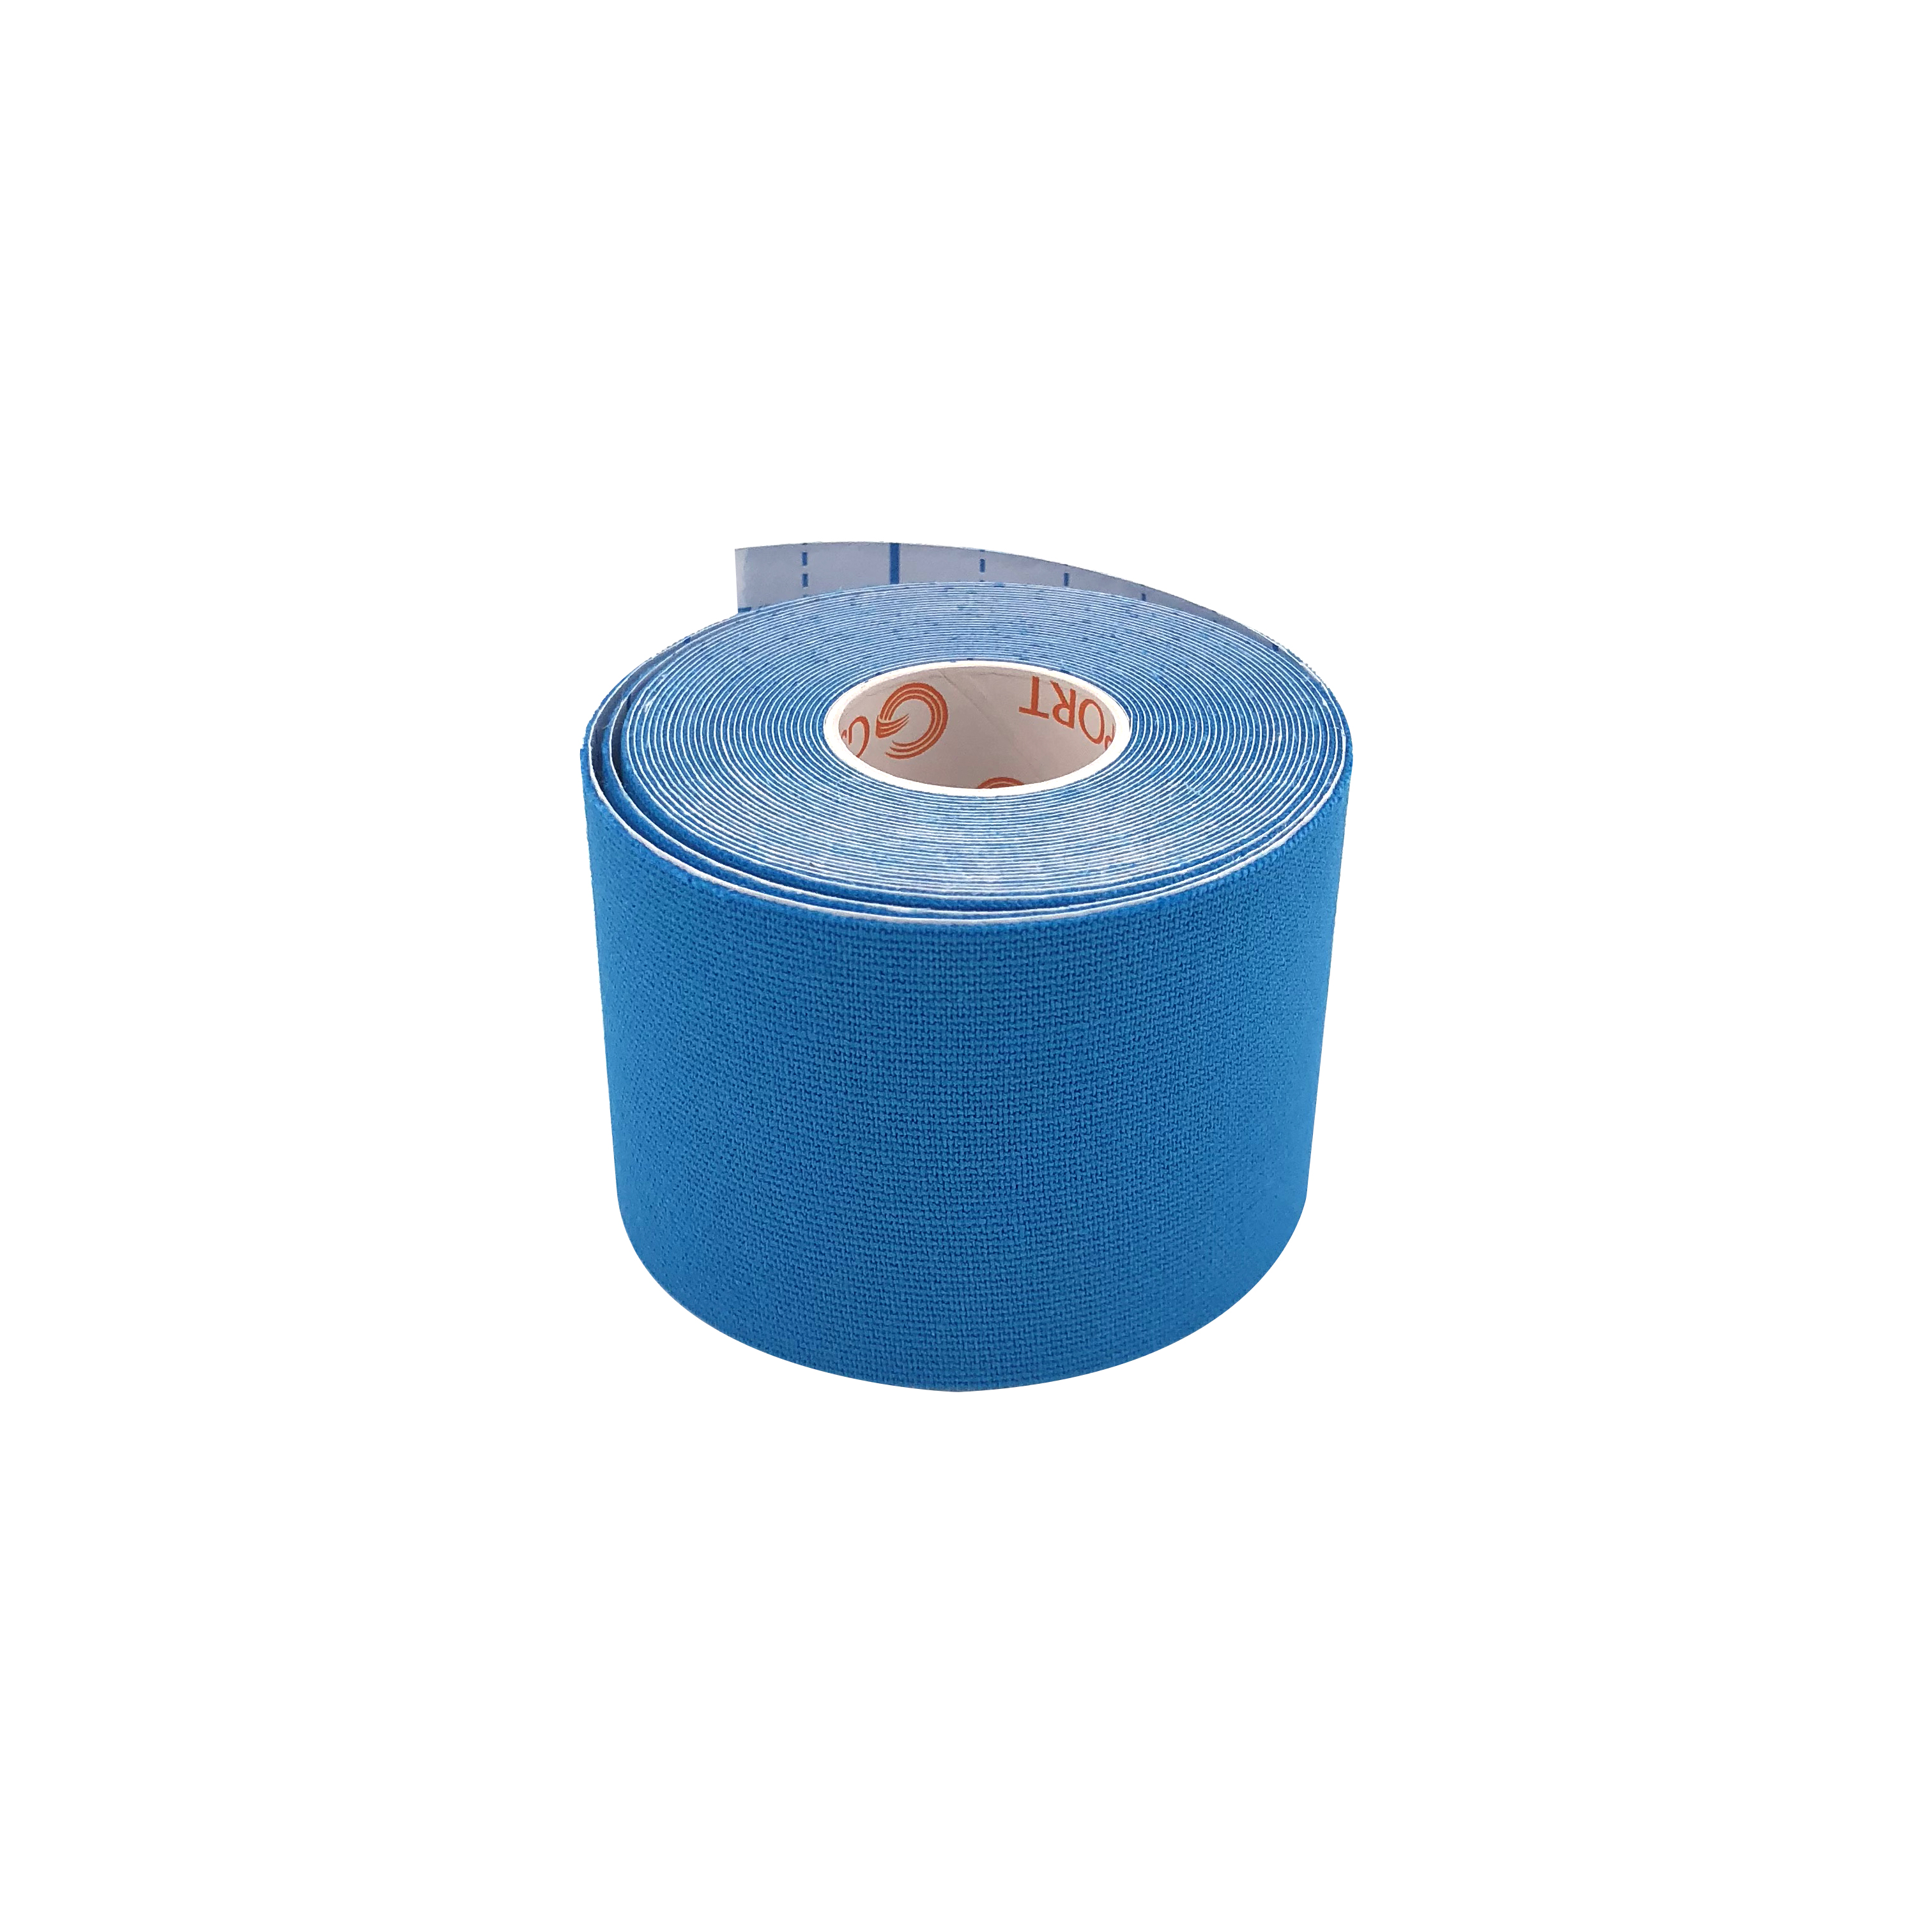 5cm*5m physio kinesiology tape pro kinesiology therapeutic sports tape selfcut